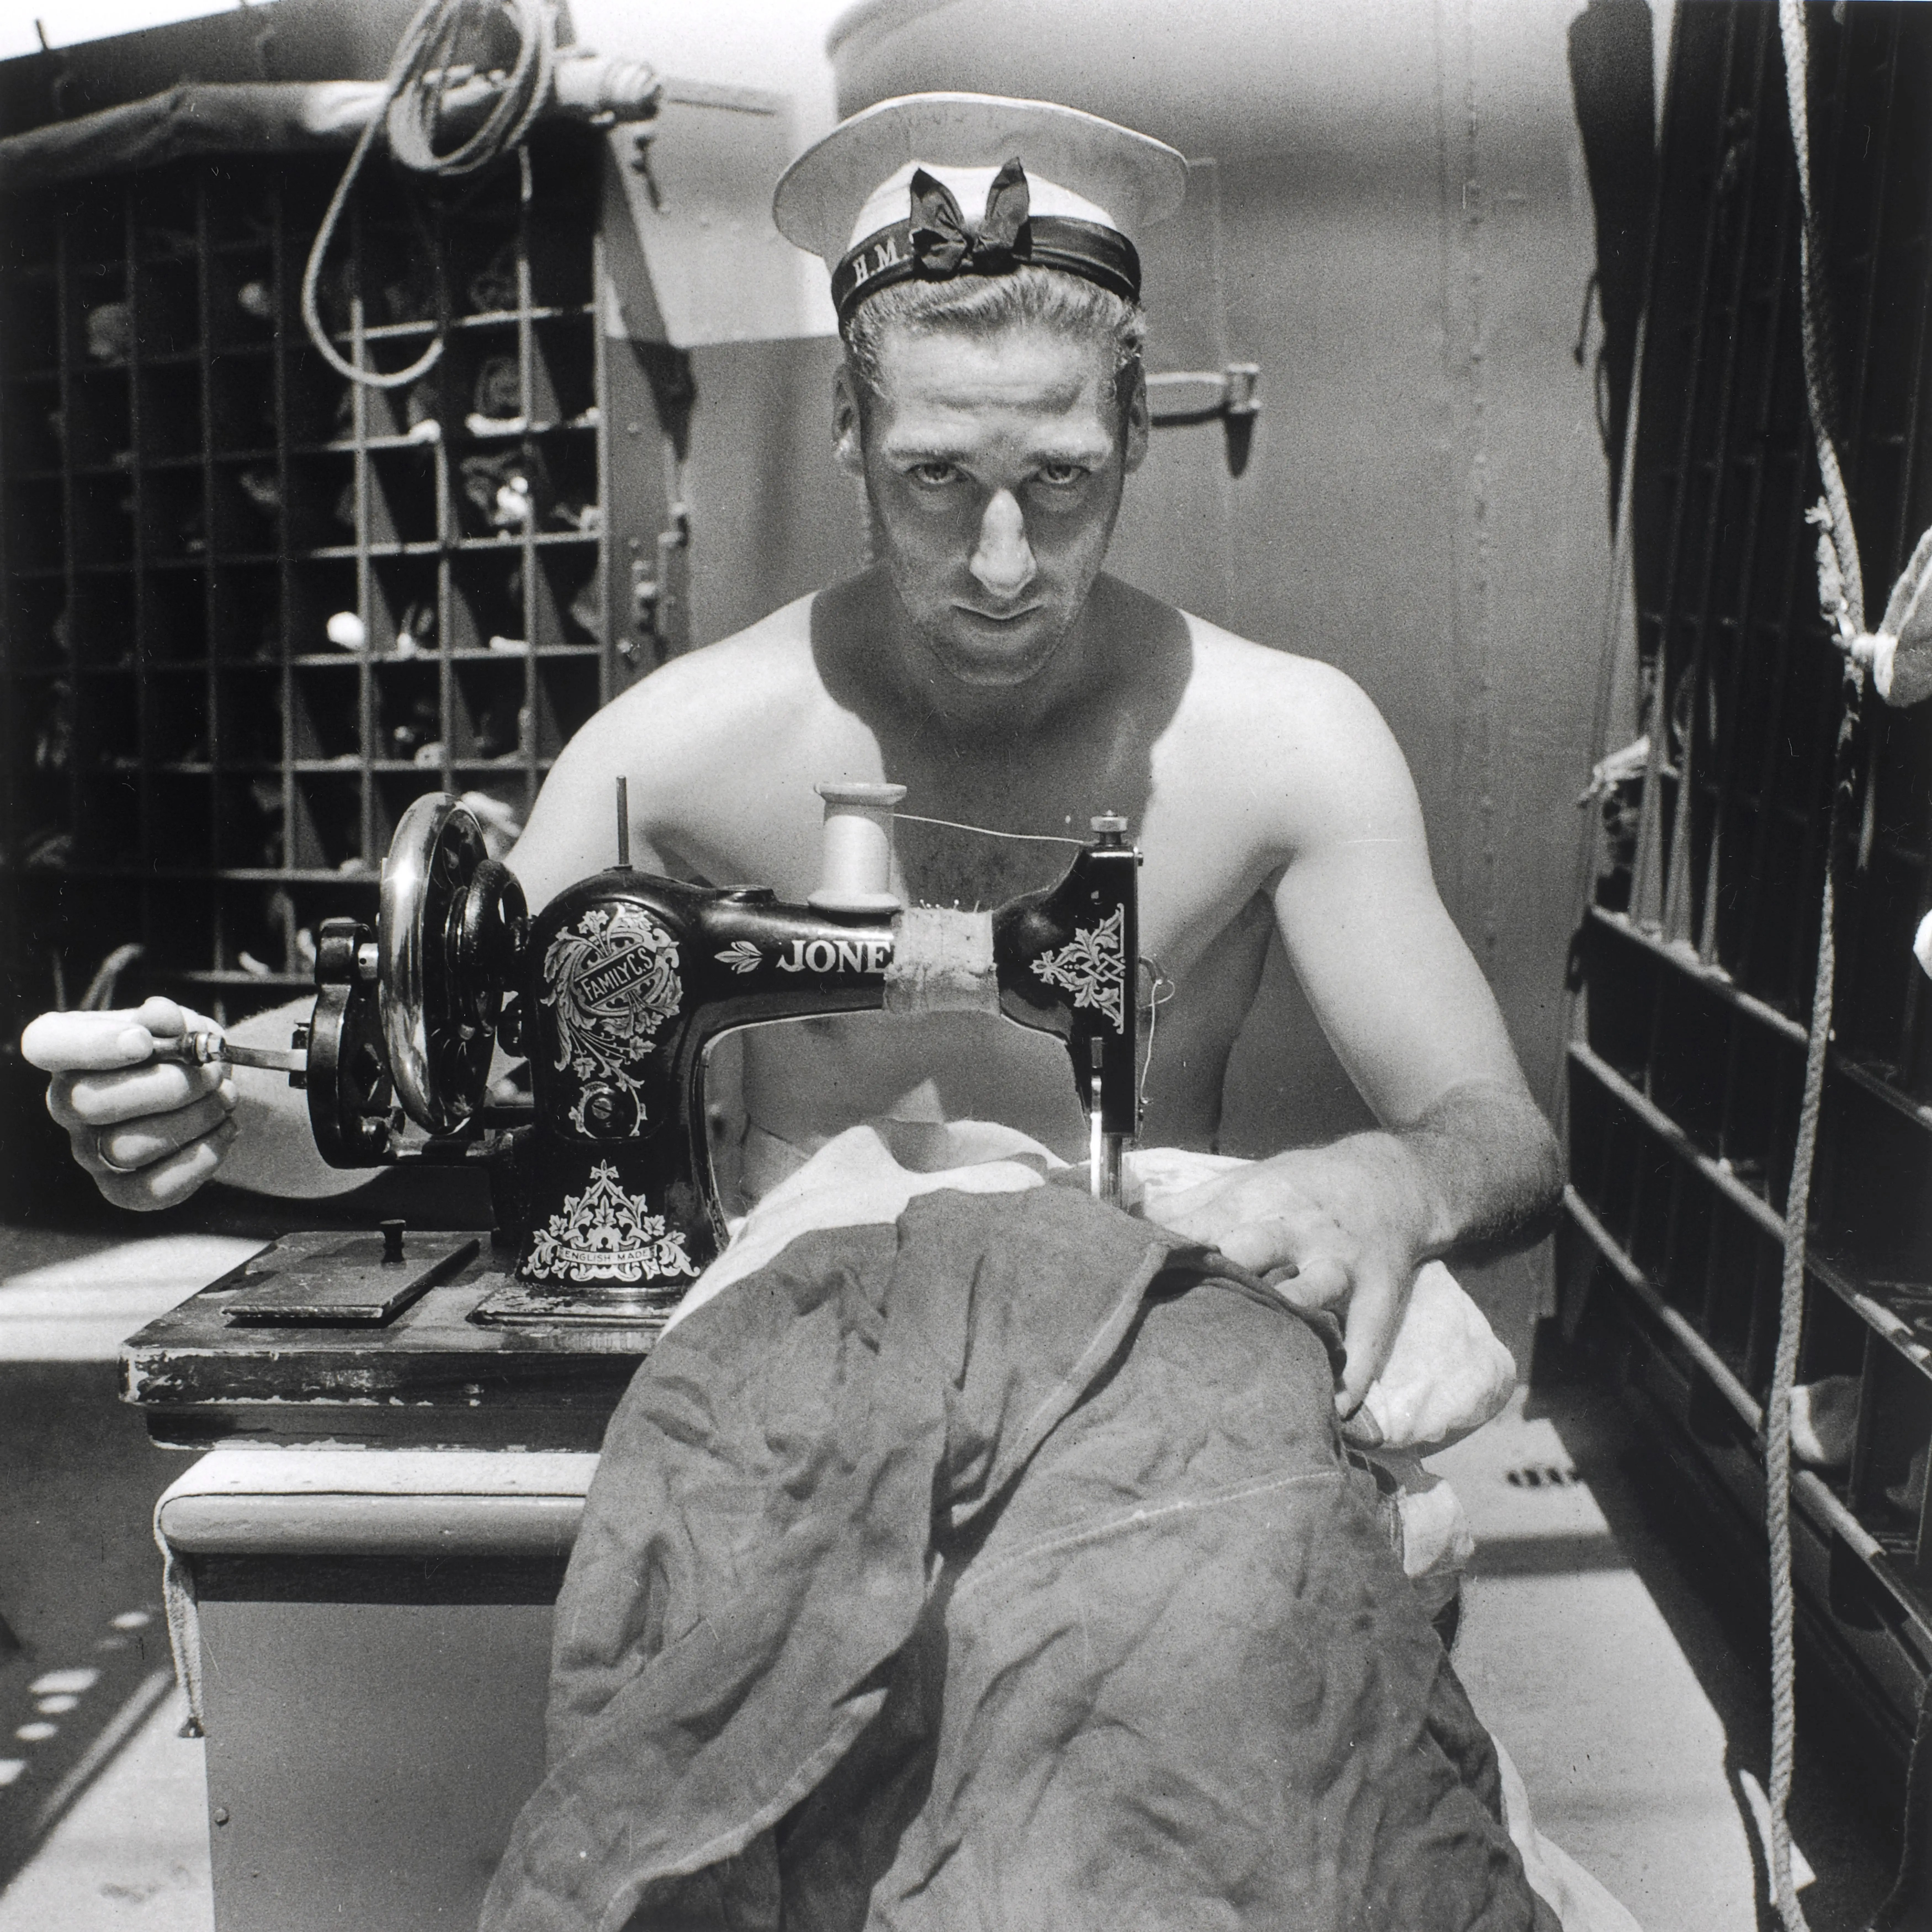 A Royal Navy sailor on board HMS Alcantara uses a portable sewing machine to repair a signal flag during a voyage to Sierra Leone